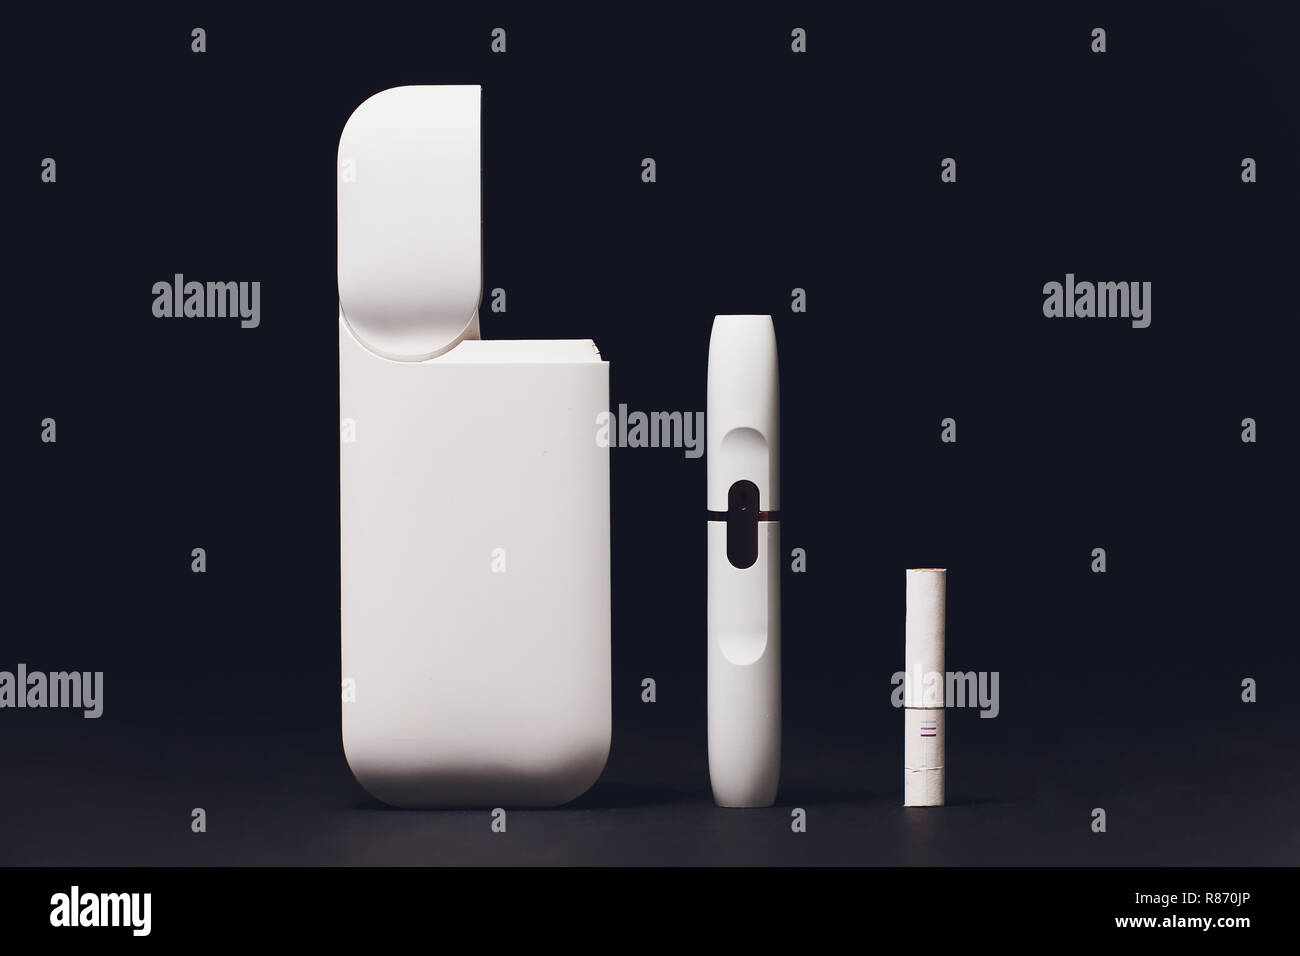 Newest electronic cigarettes, heating tobacco system IQOS, smoking, dark blue isolated on black background. white gadget Stock Photo